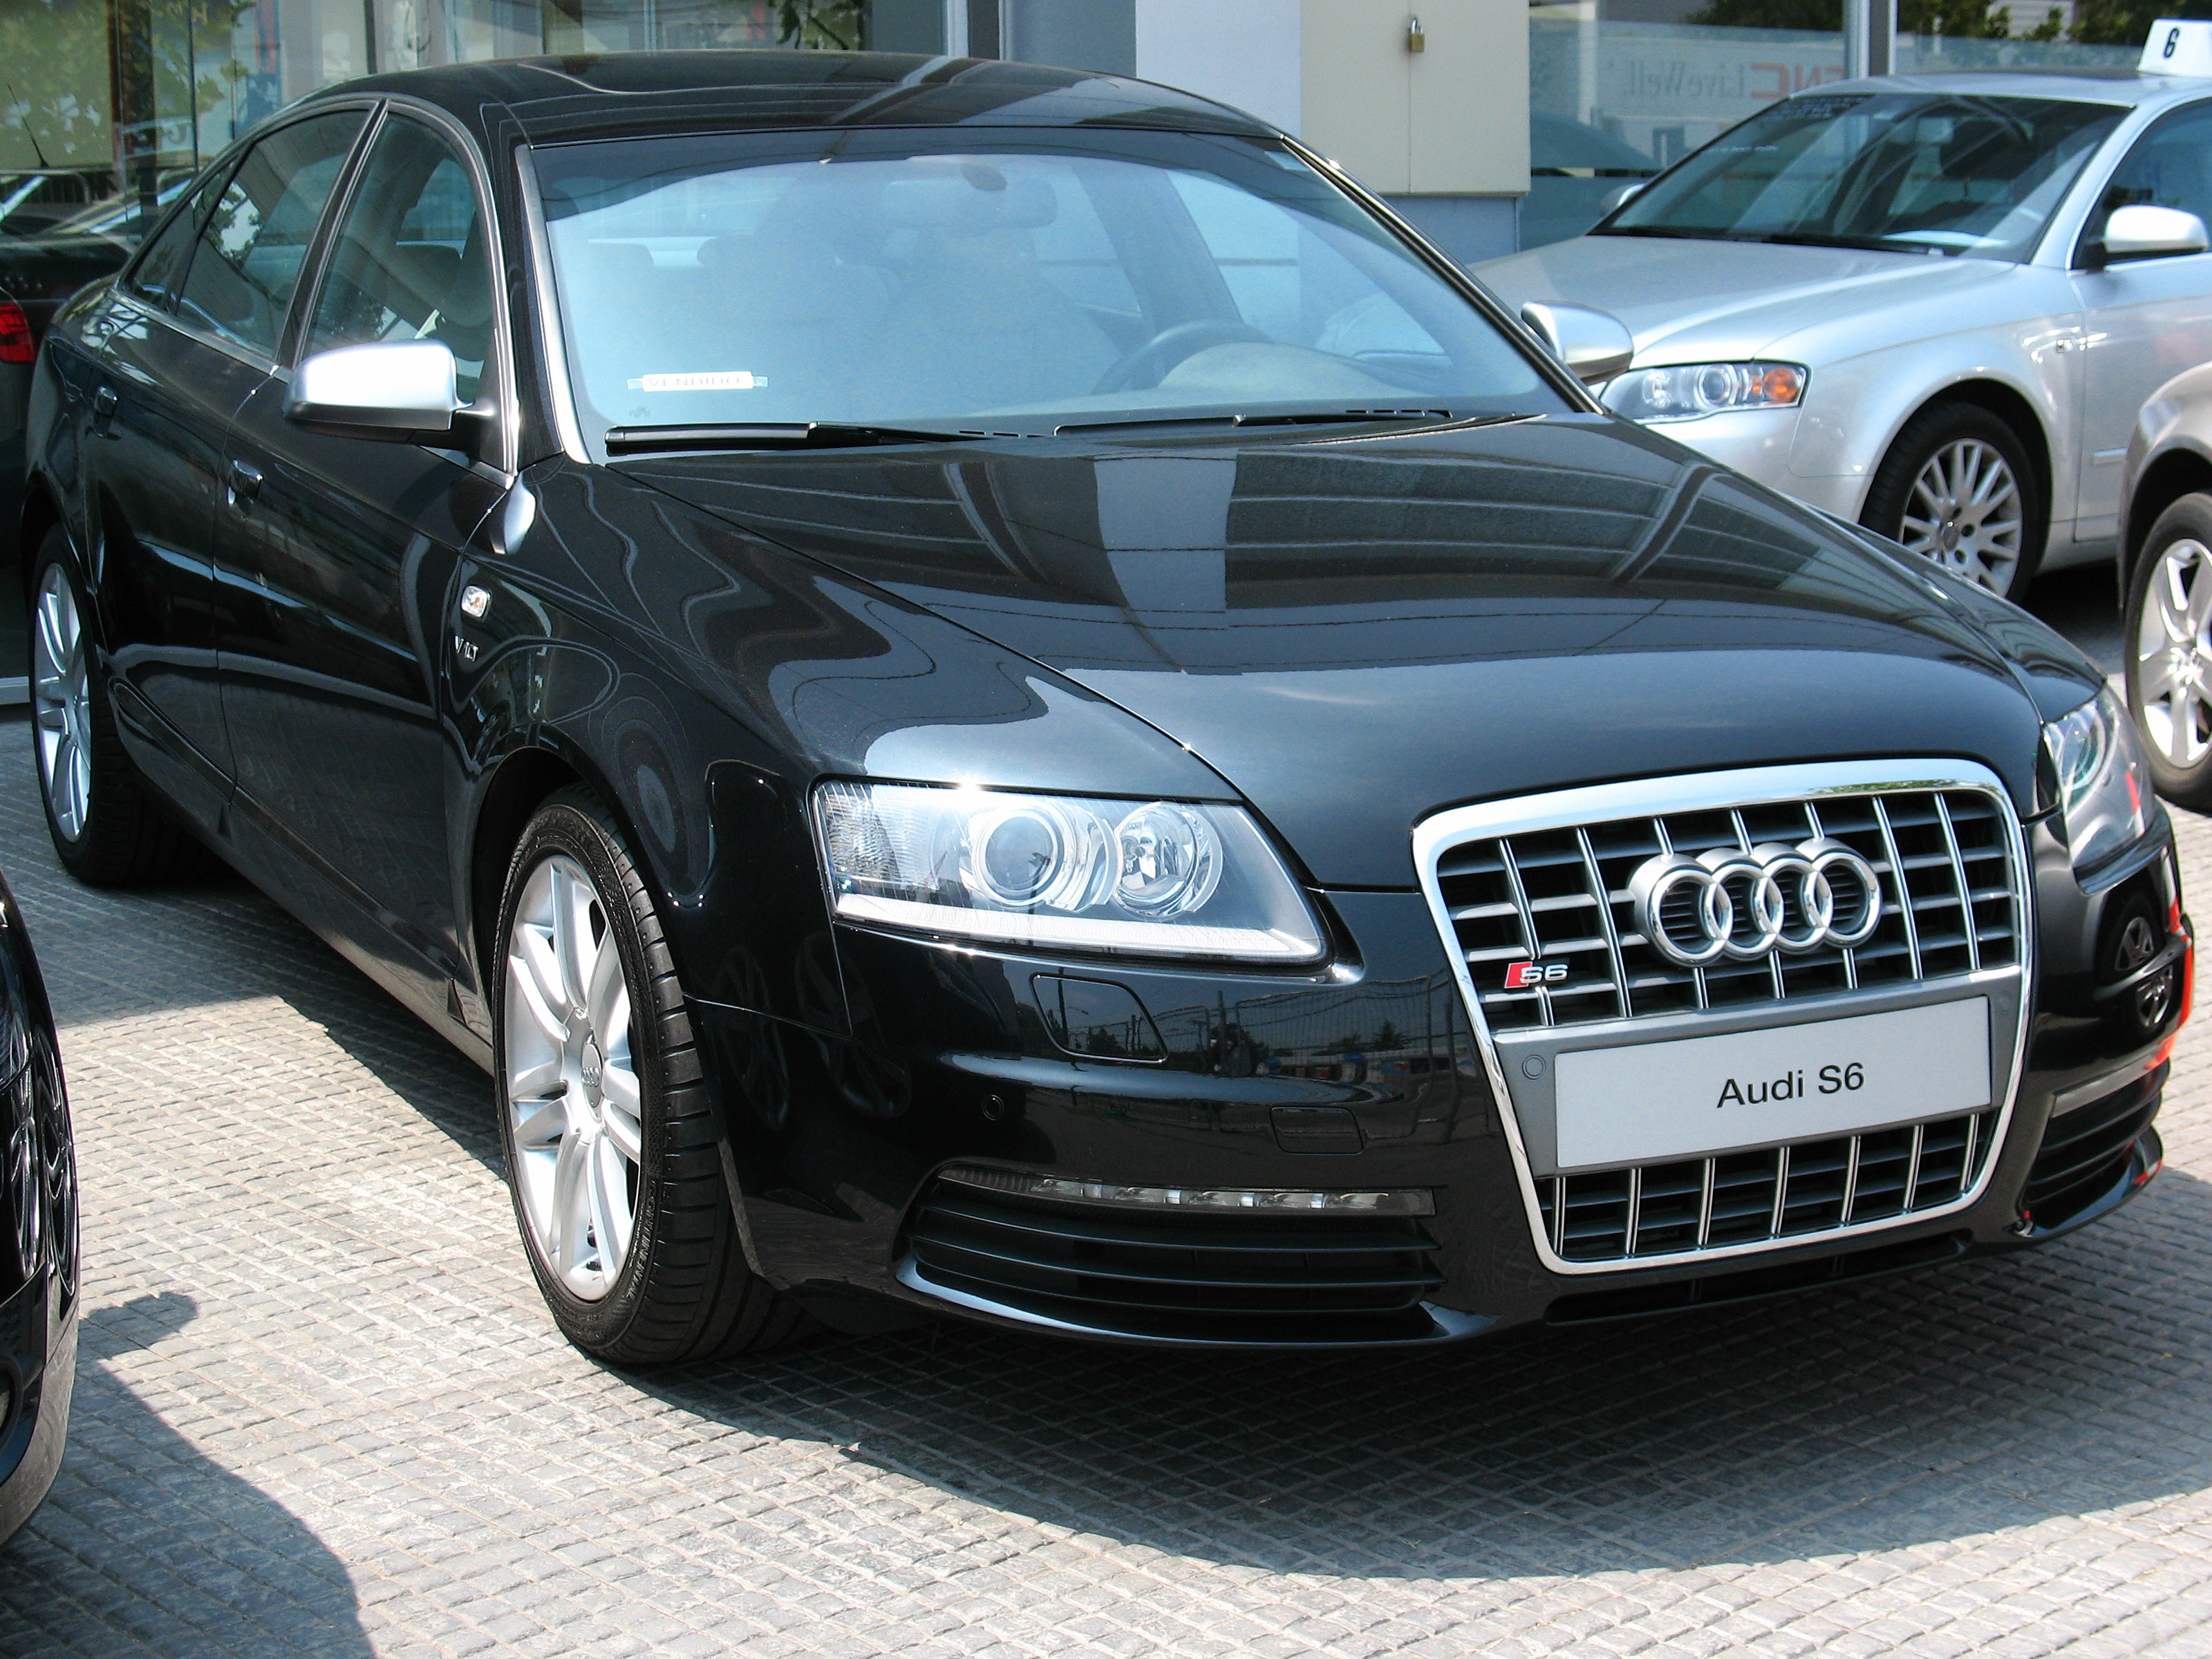 FileAudi S V Jpg Wikimedia Commons - V10 audi s6